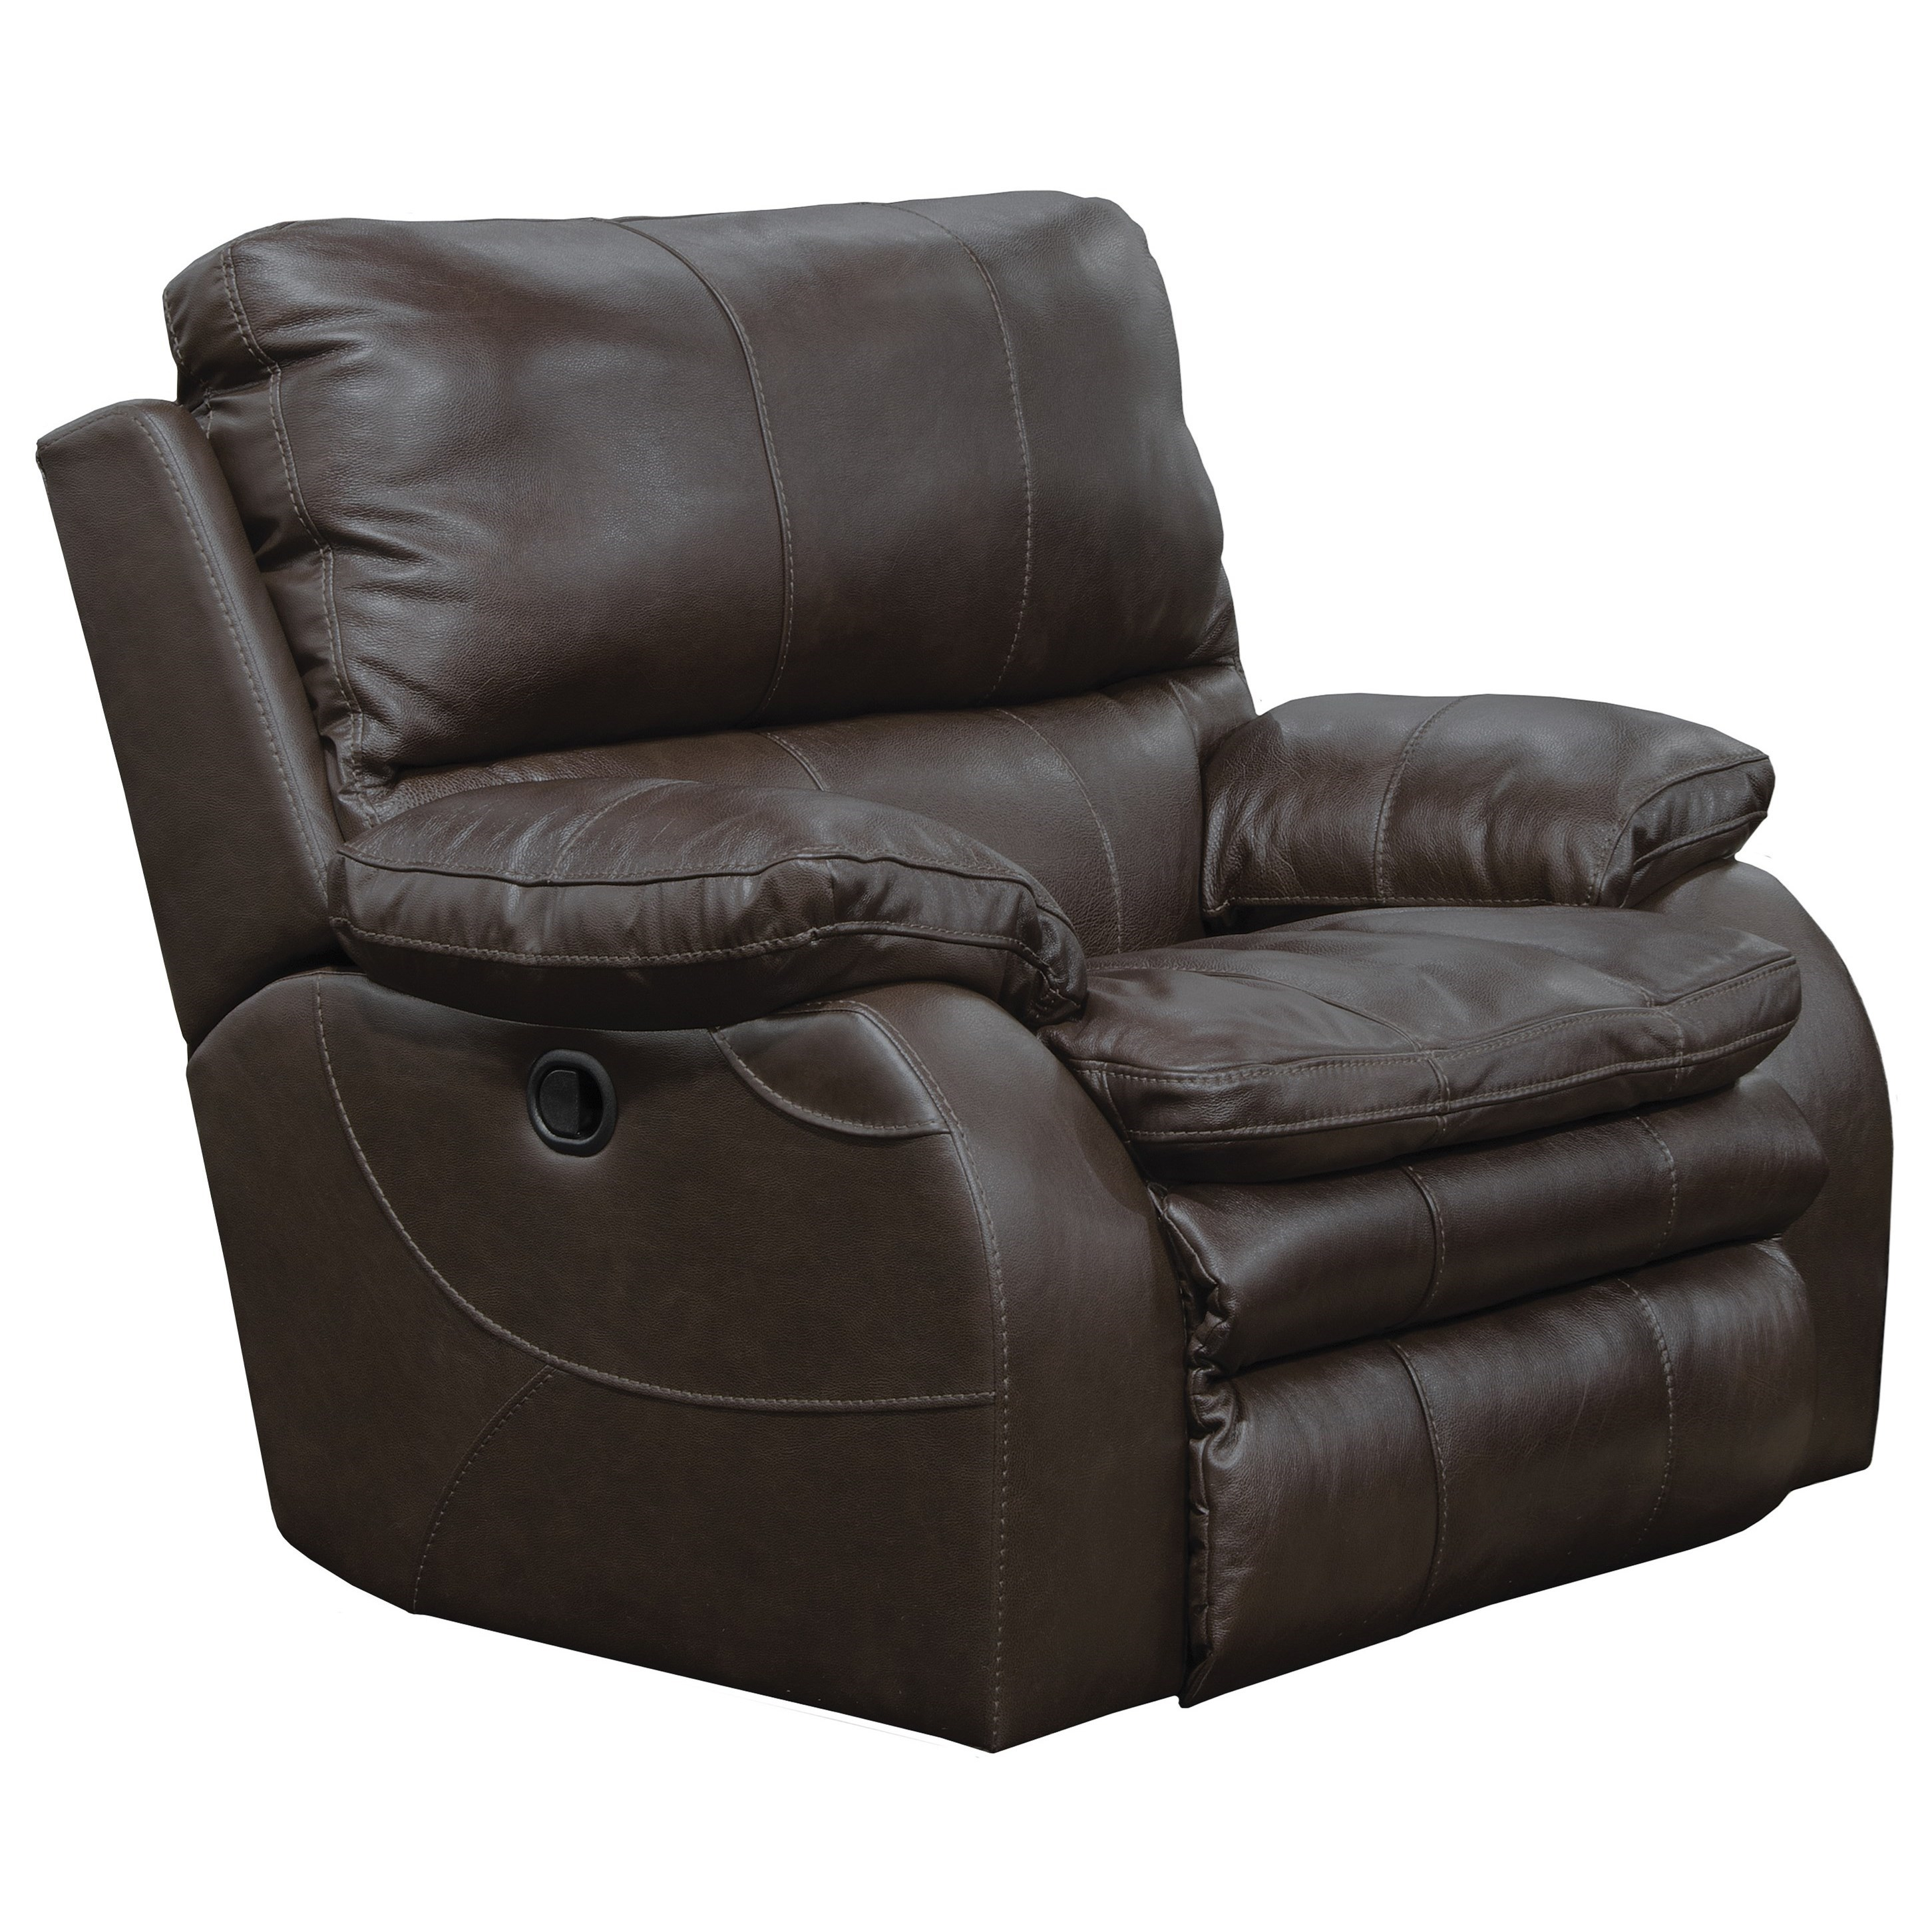 Verona Lay Flat Recliner by Catnapper at Northeast Factory Direct